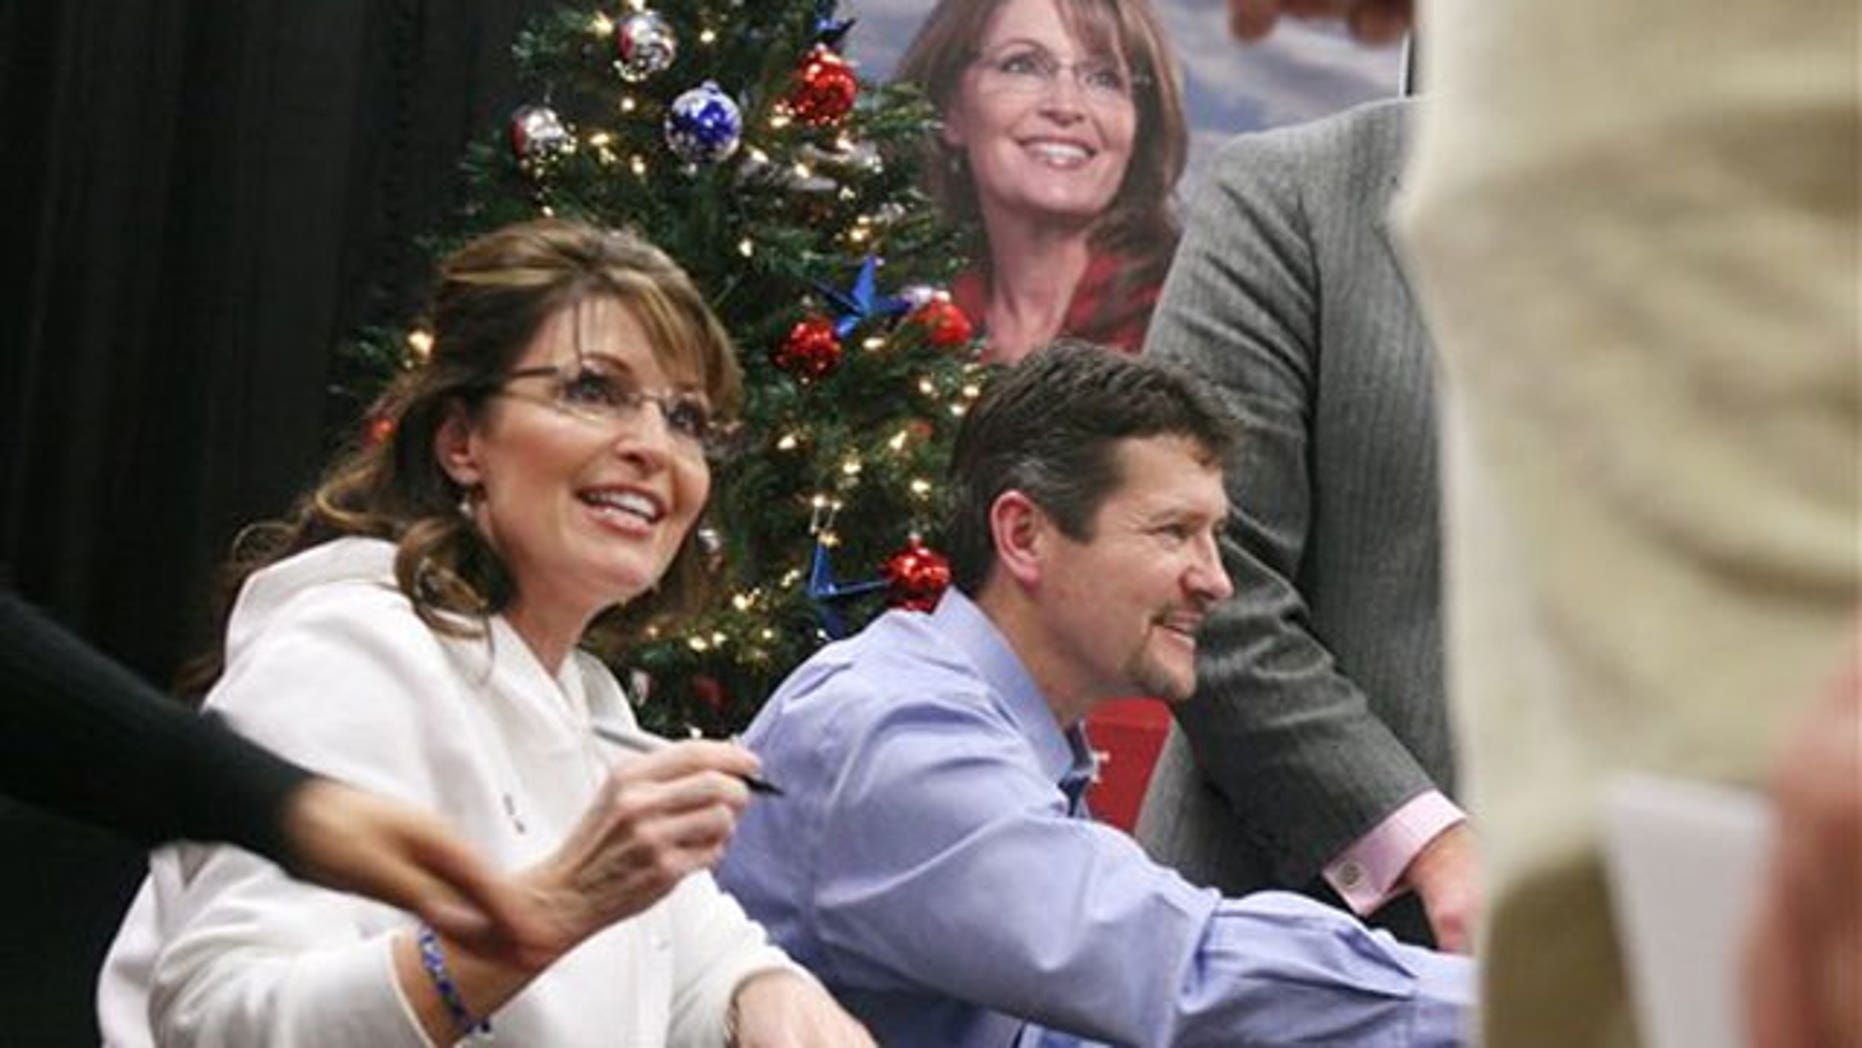 Dec. 4: Sarah Palin, left, signs her book 'Going Rogue' with help from her husband, Todd, in Fort Hood, Texas (AP).